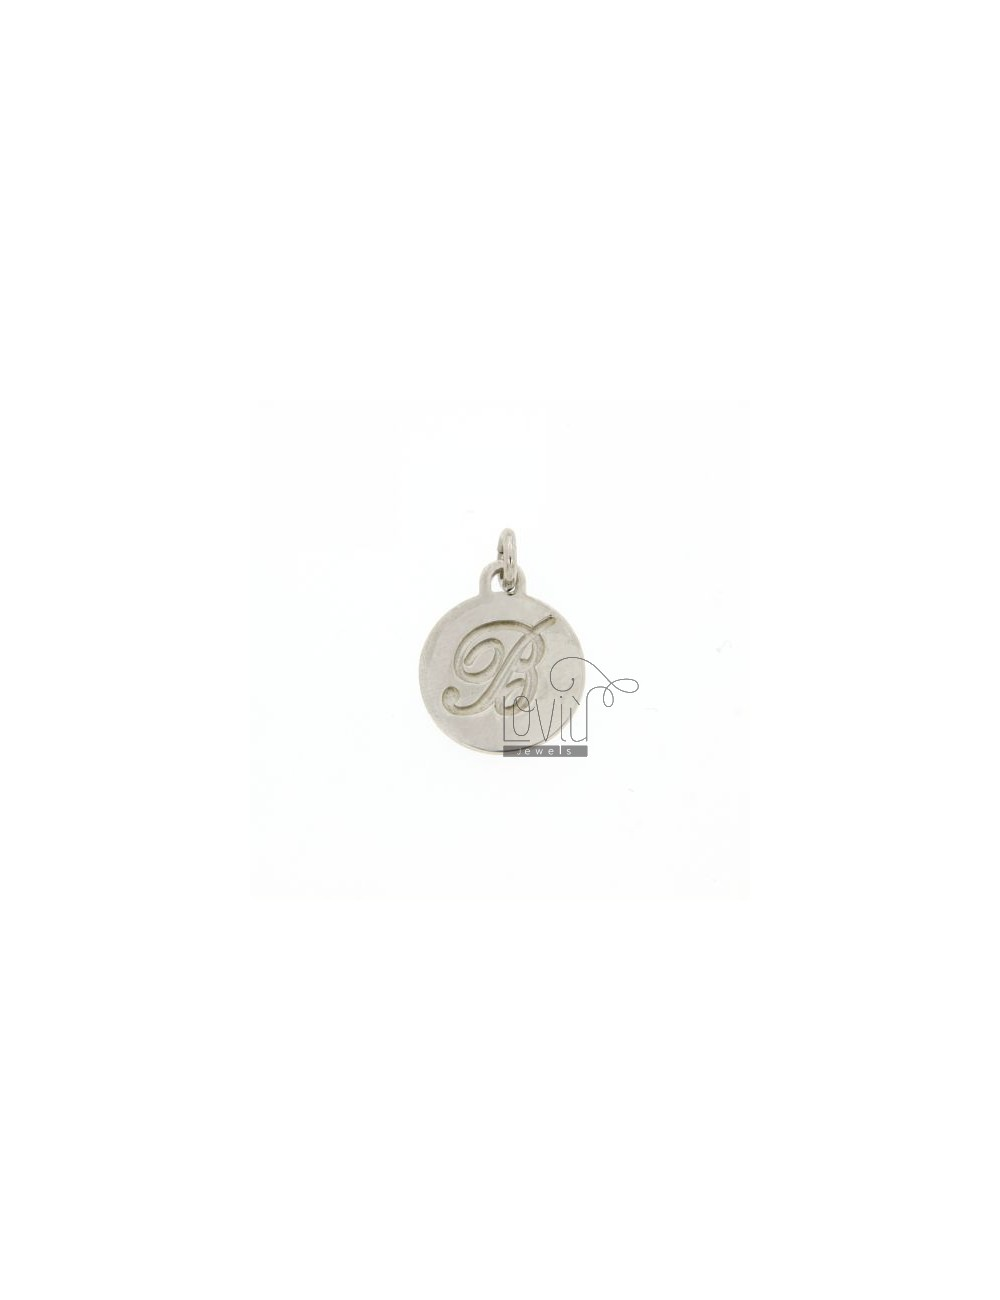 CHARM ROUND 15 MM WITH LETTER B ENGRAVED IN AG TIT 925 ‰ RHODIUM